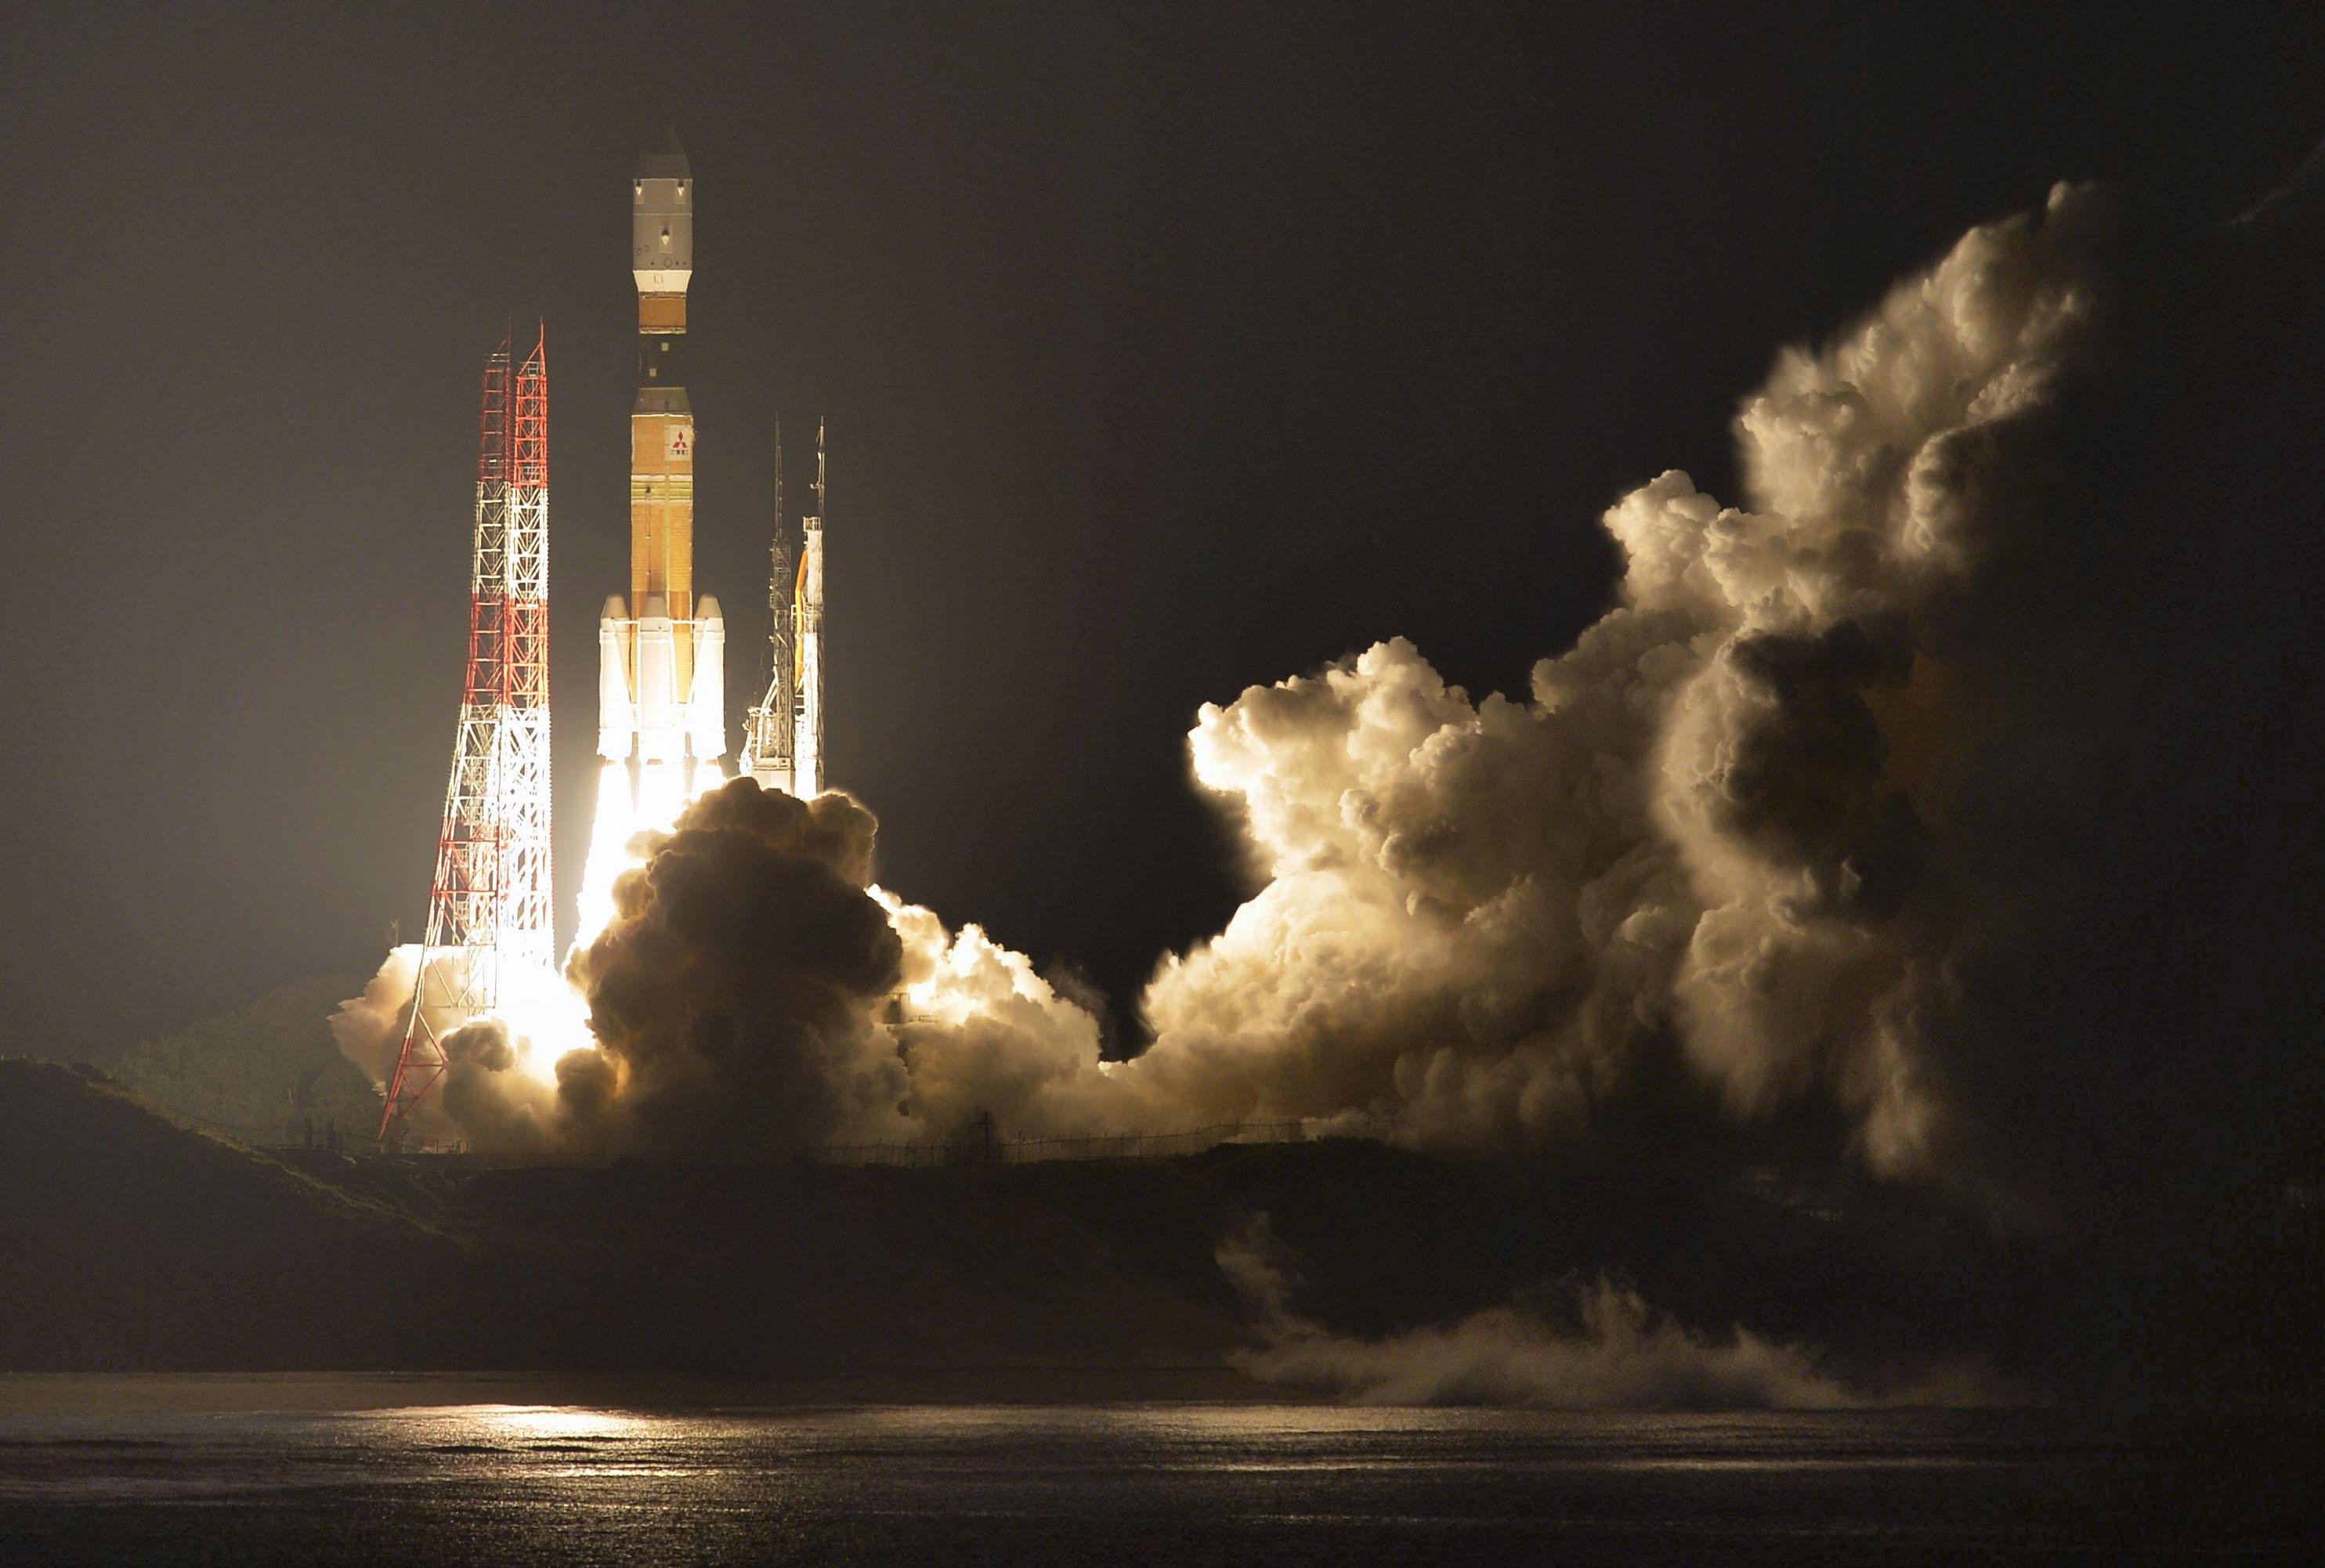 Japan launches much-needed supplies to space station